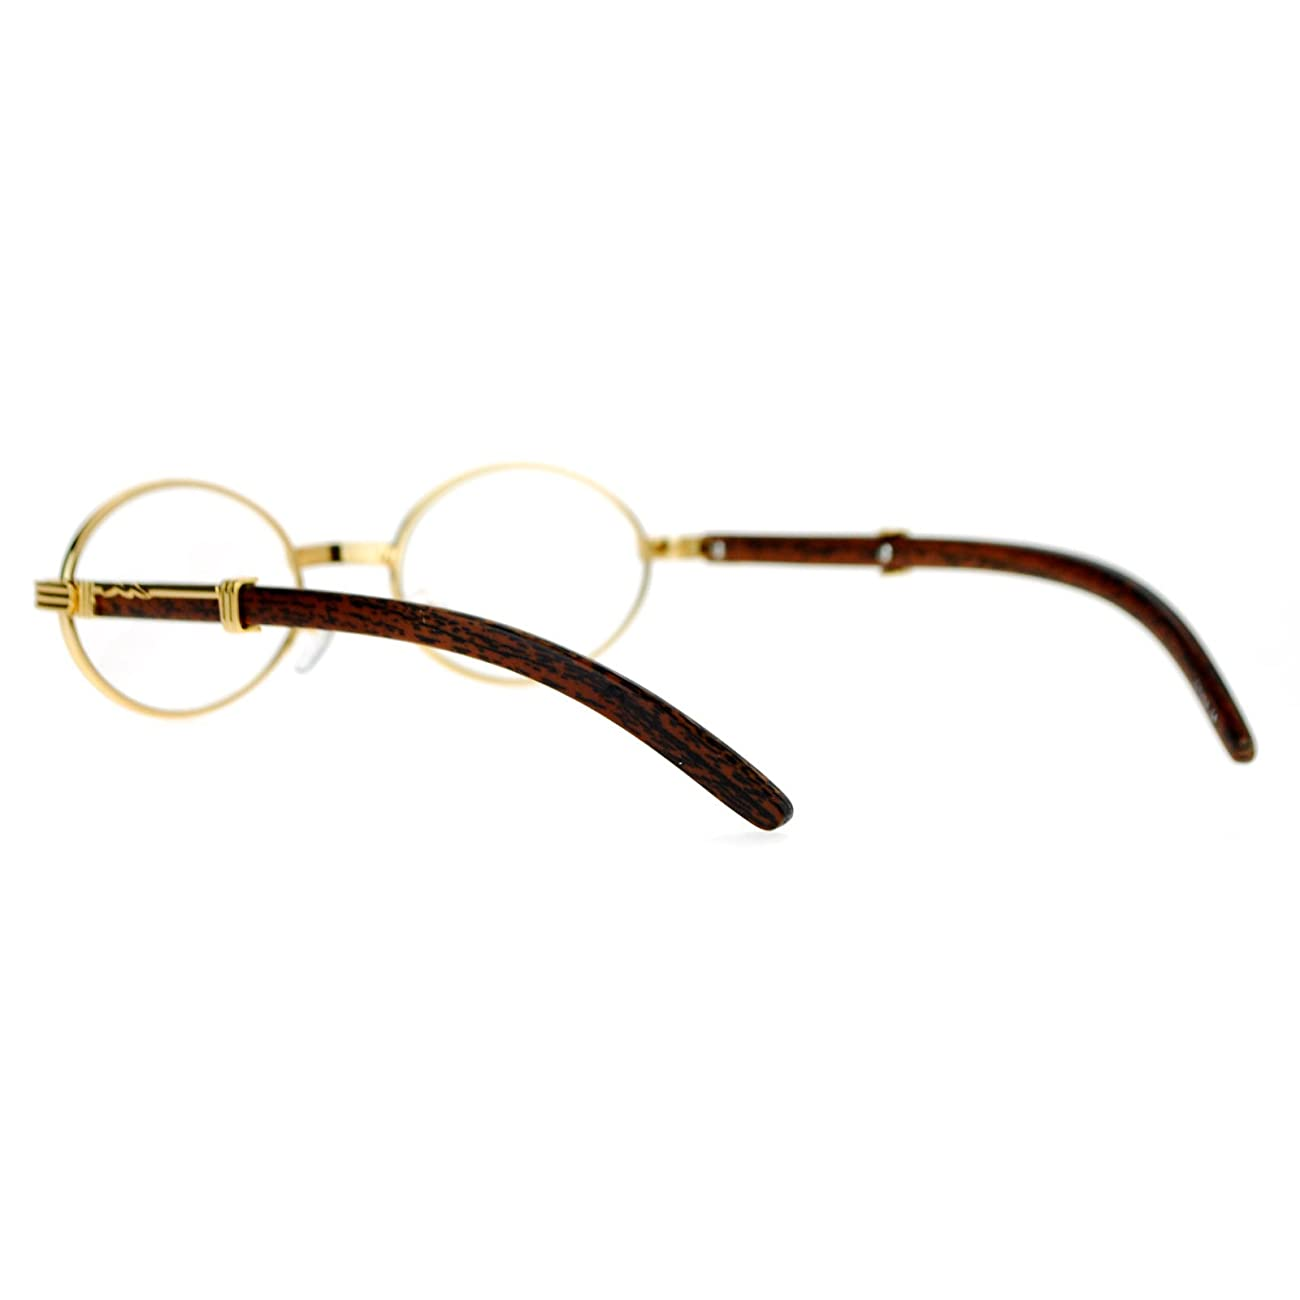 SA106 Art Nouveau Vintage Style Oval Metal Frame Eye Glasses 4